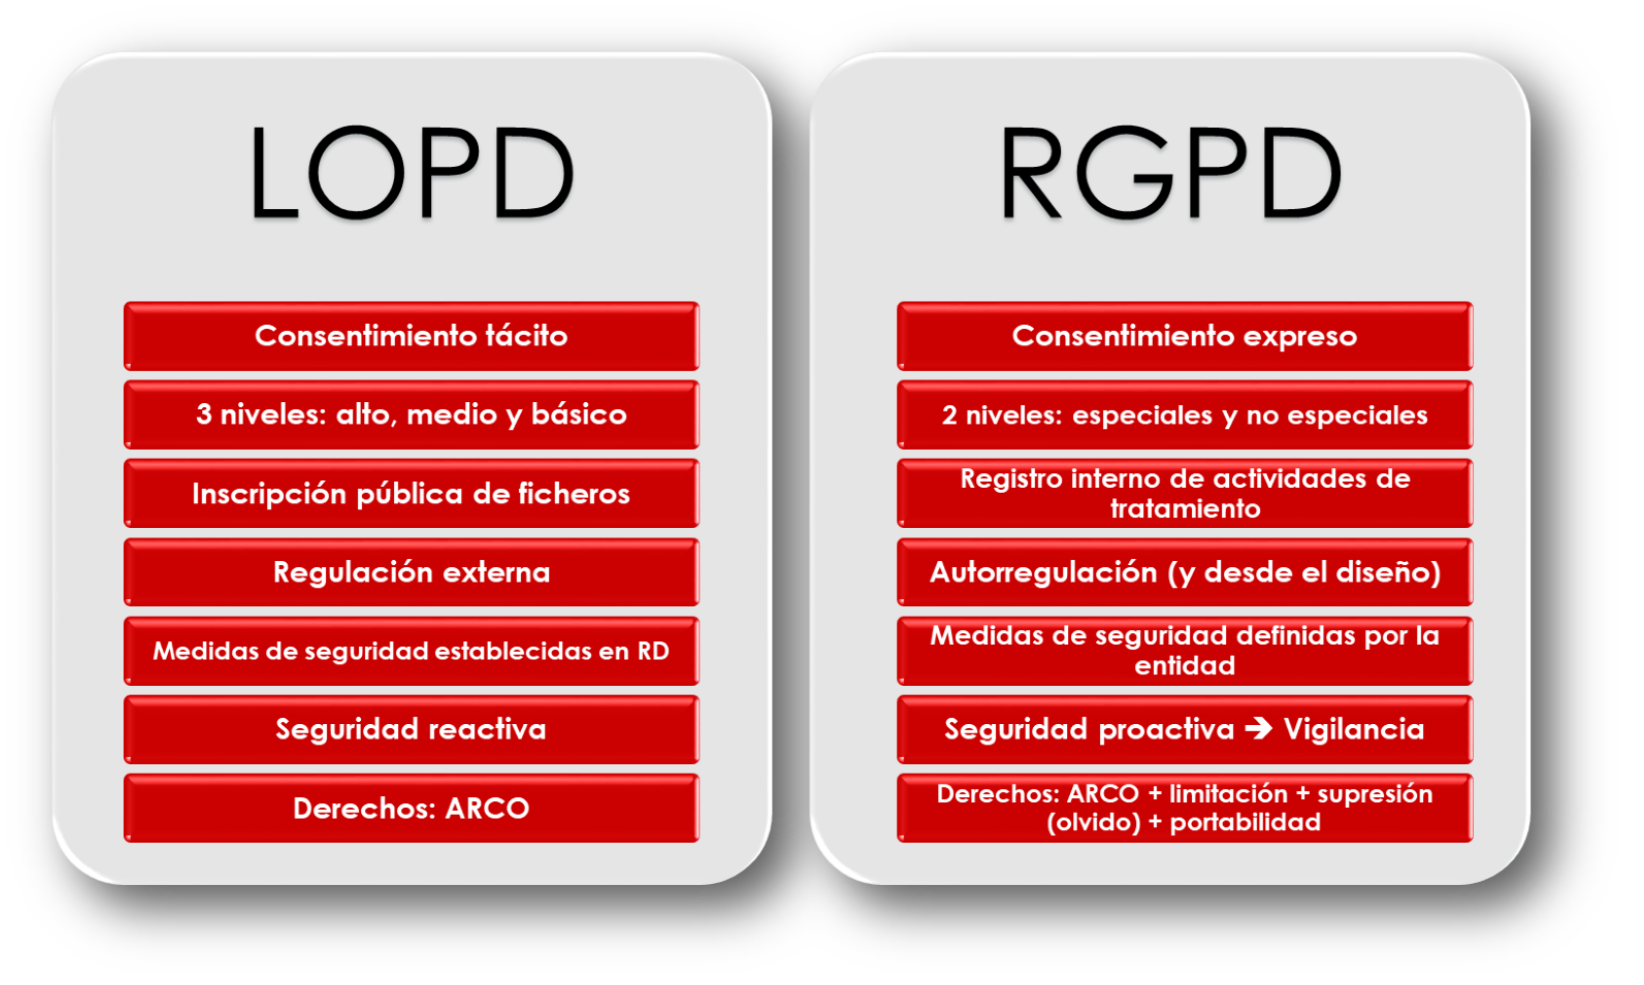 cambios legales rgpd